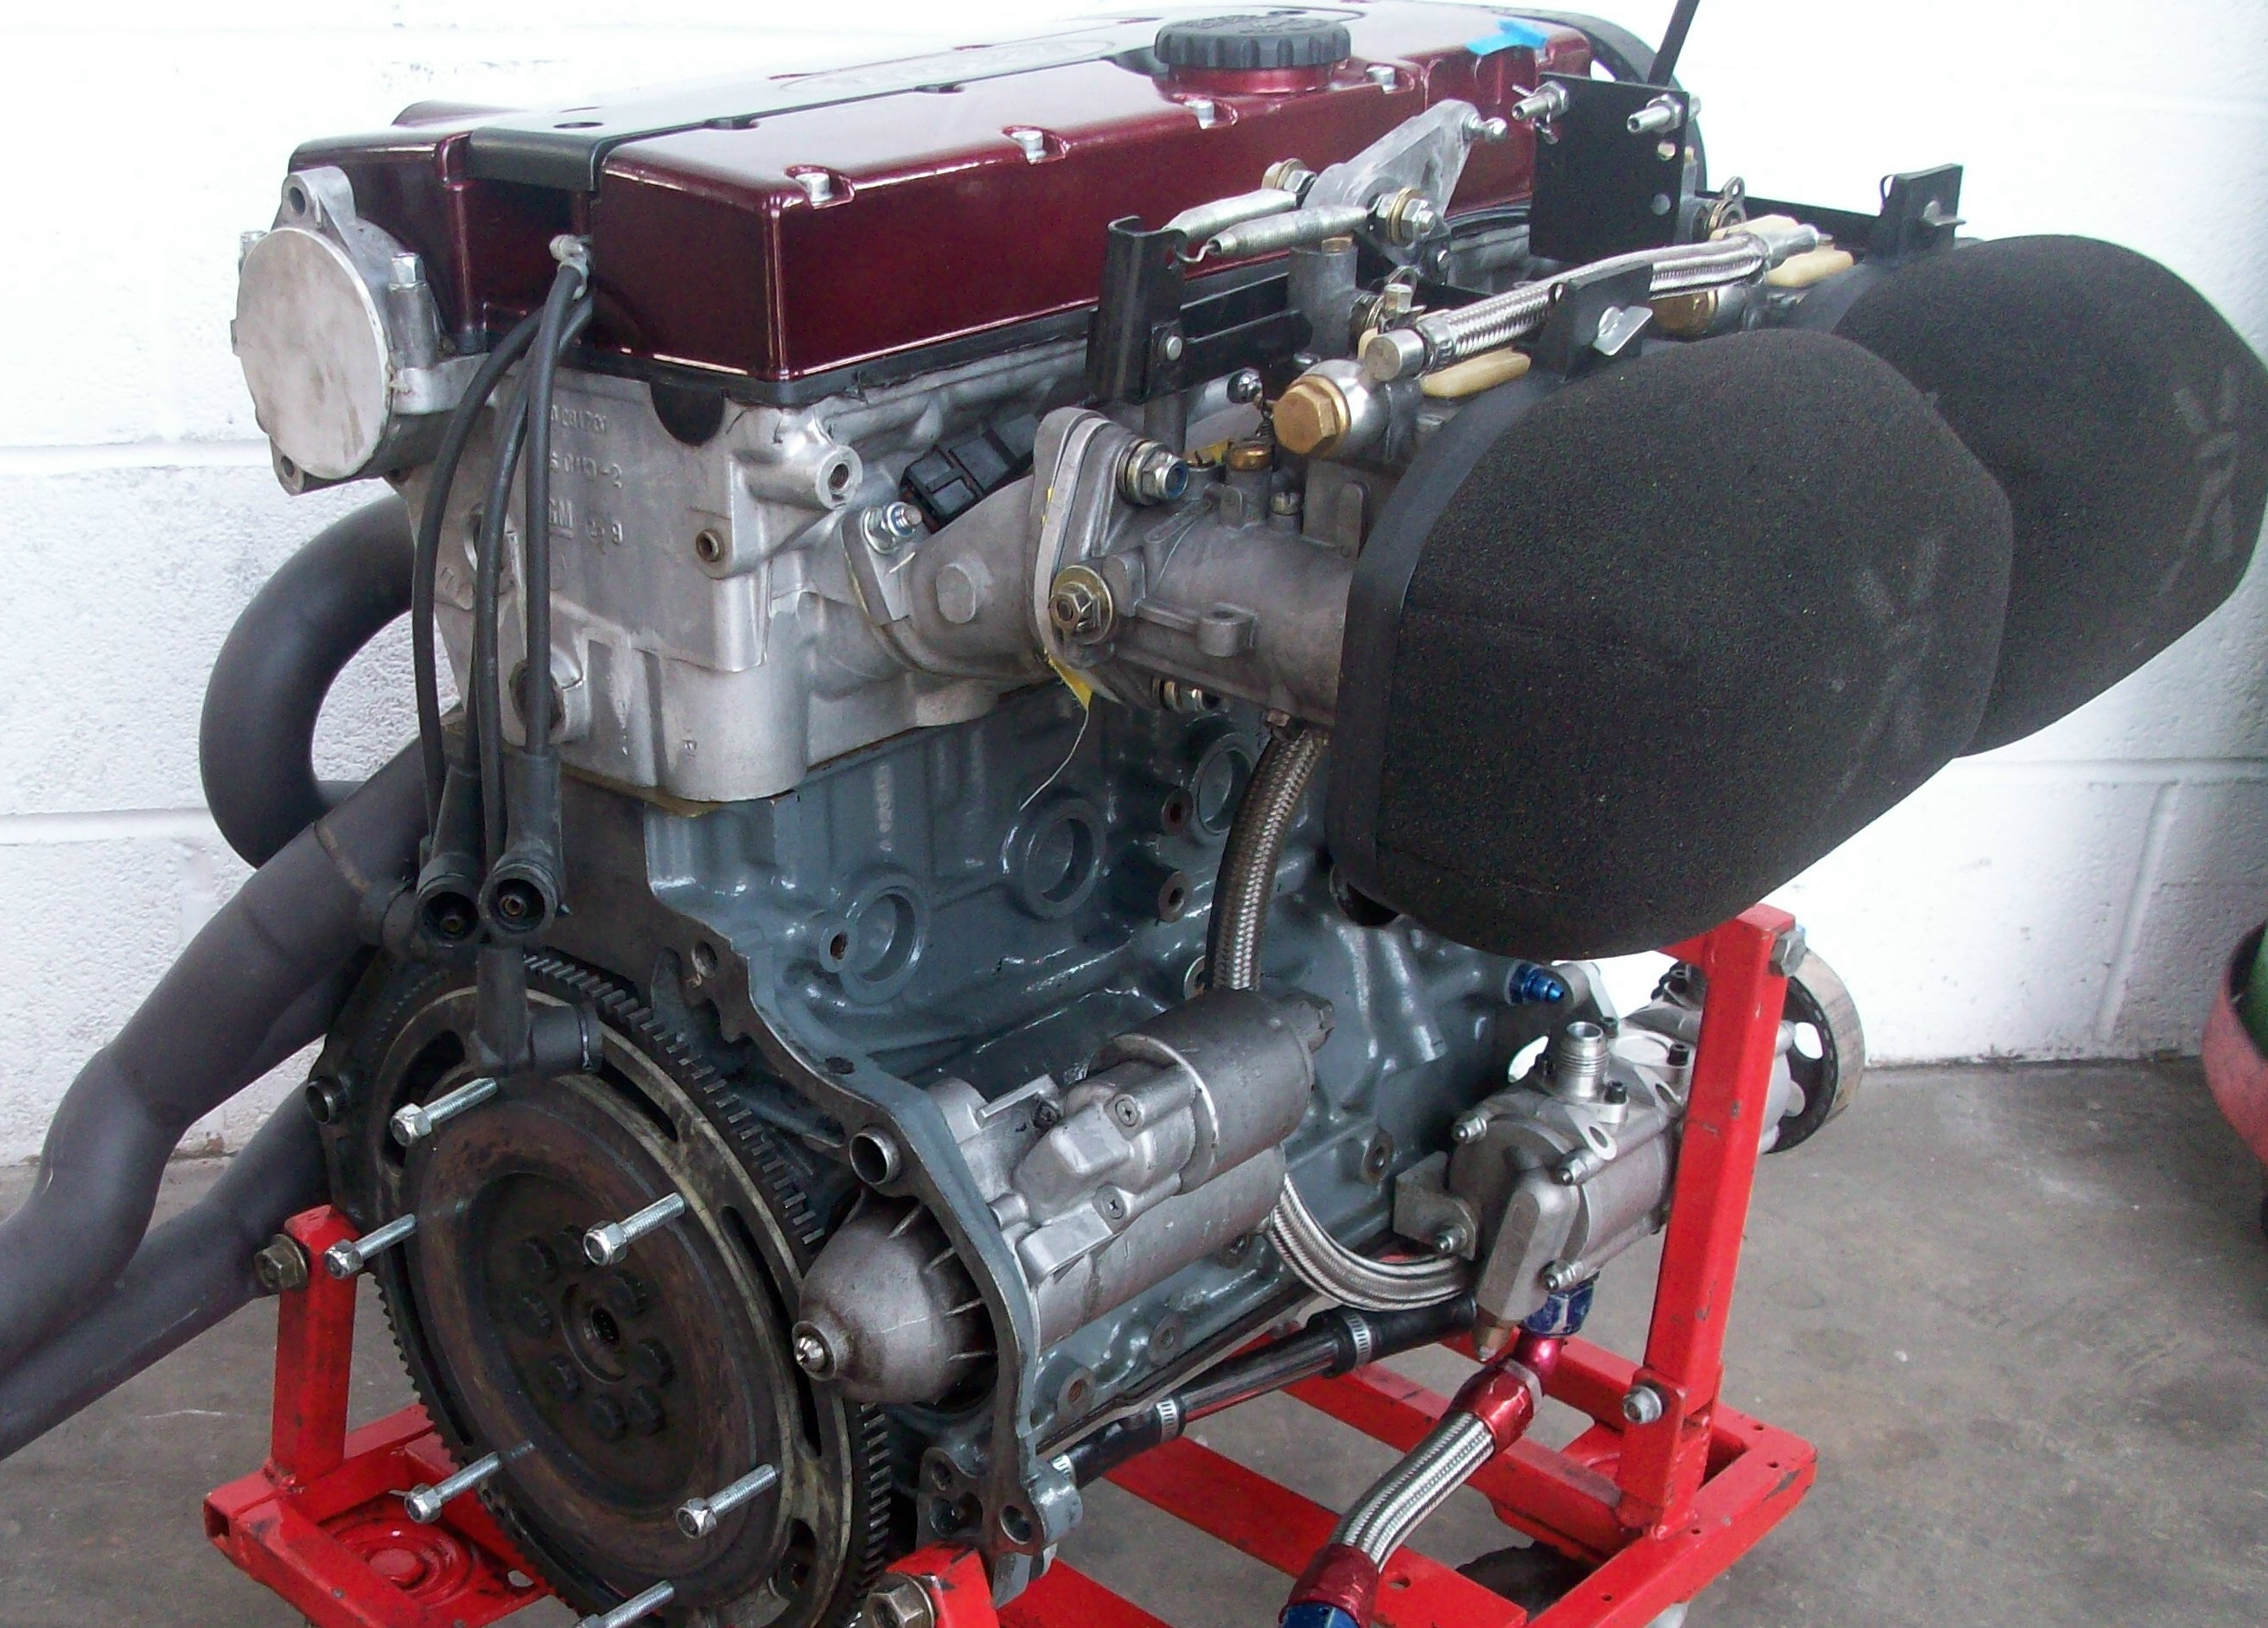 vauxhall redtop full race engine race car parts  sale  raced rallied rally cars